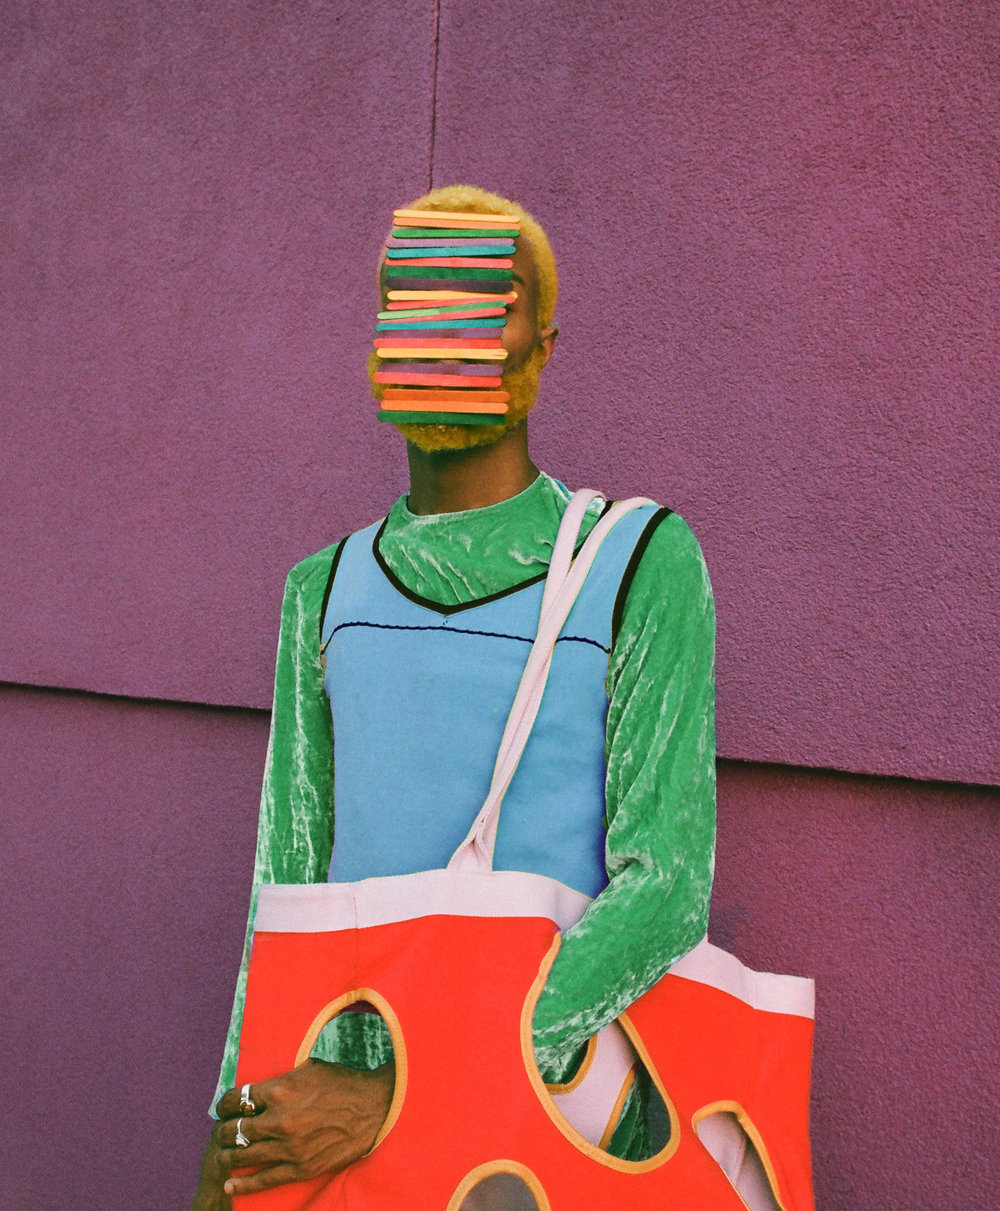 Arielle Bobb-Willis - Between grace and awkwardness lies a colorful world of textile and concrete.Portfolio crush